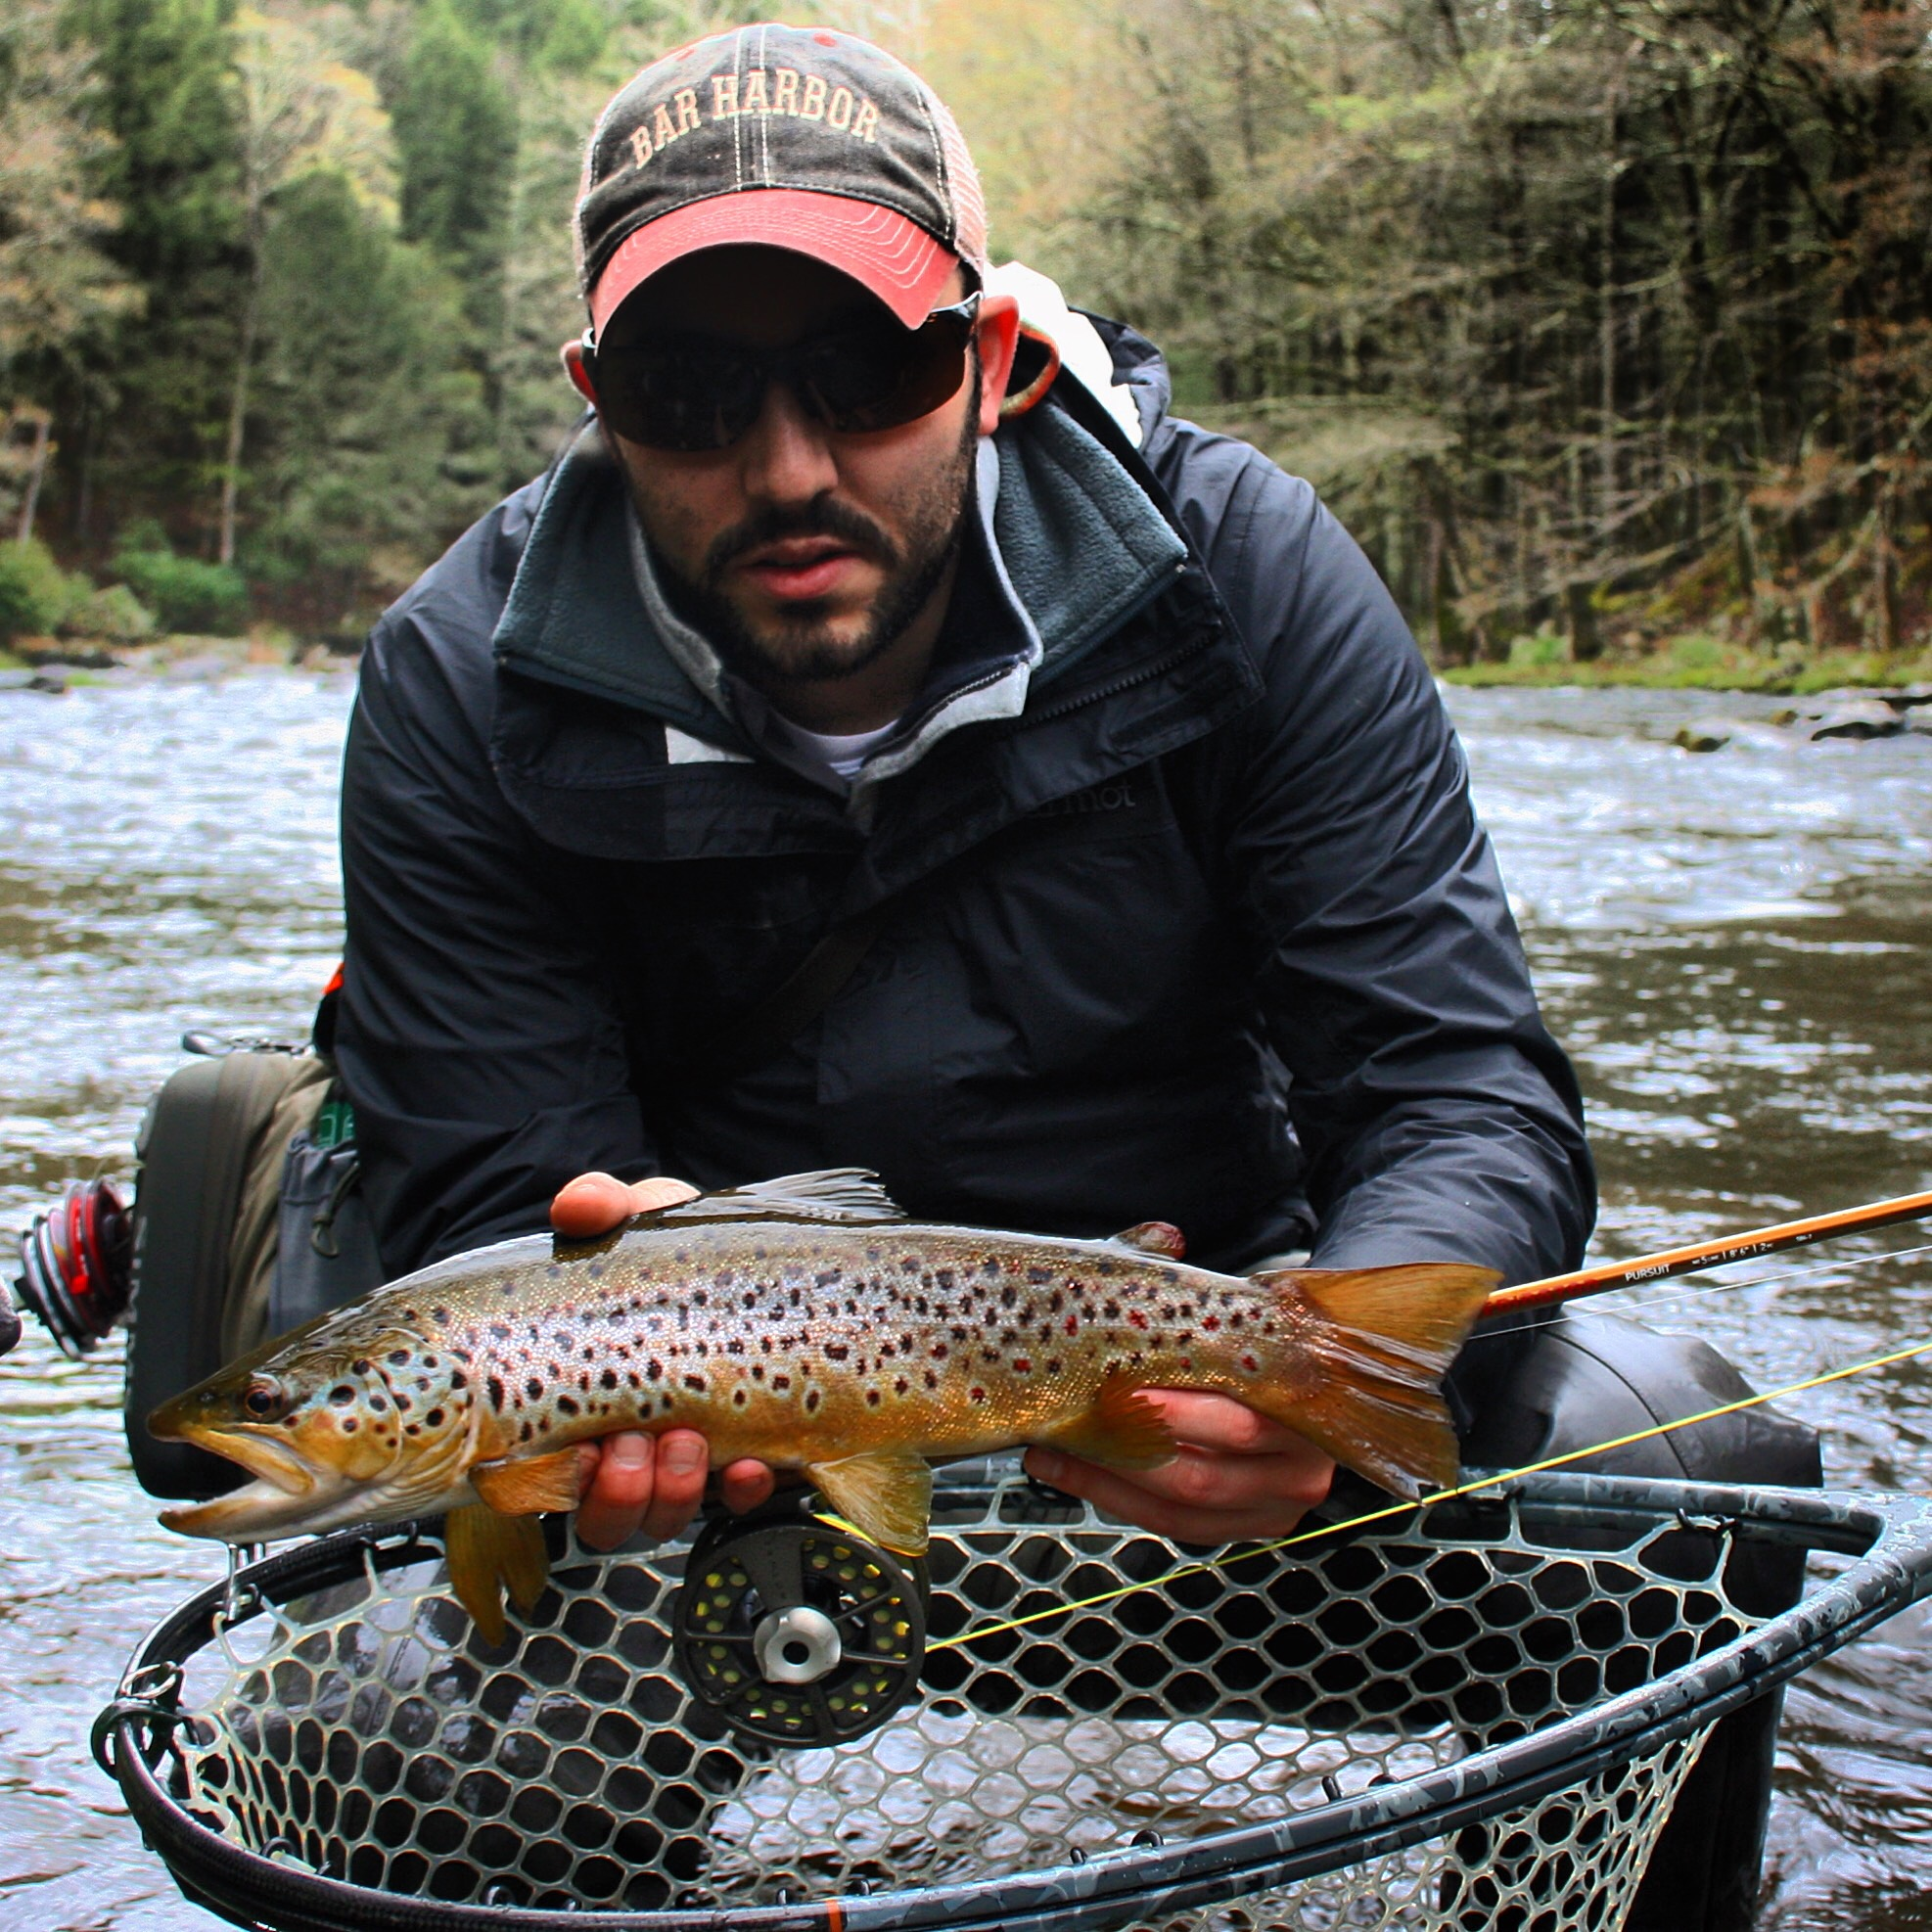 Michael Meola - Guide/Instructor - Mike enjoys all kinds of fishing, but fly fishing for trout is at the top of his list.It doesn't matter if he's casting foam dry flies at rising trout in mountain valleys, fishing technical nymph rigs in high water, or swinging wet flies and streamers, Mike's passion for chasing wild trout in wild places never ends. Mike is also an avid hiker, hunter, and former lacrosse coach.